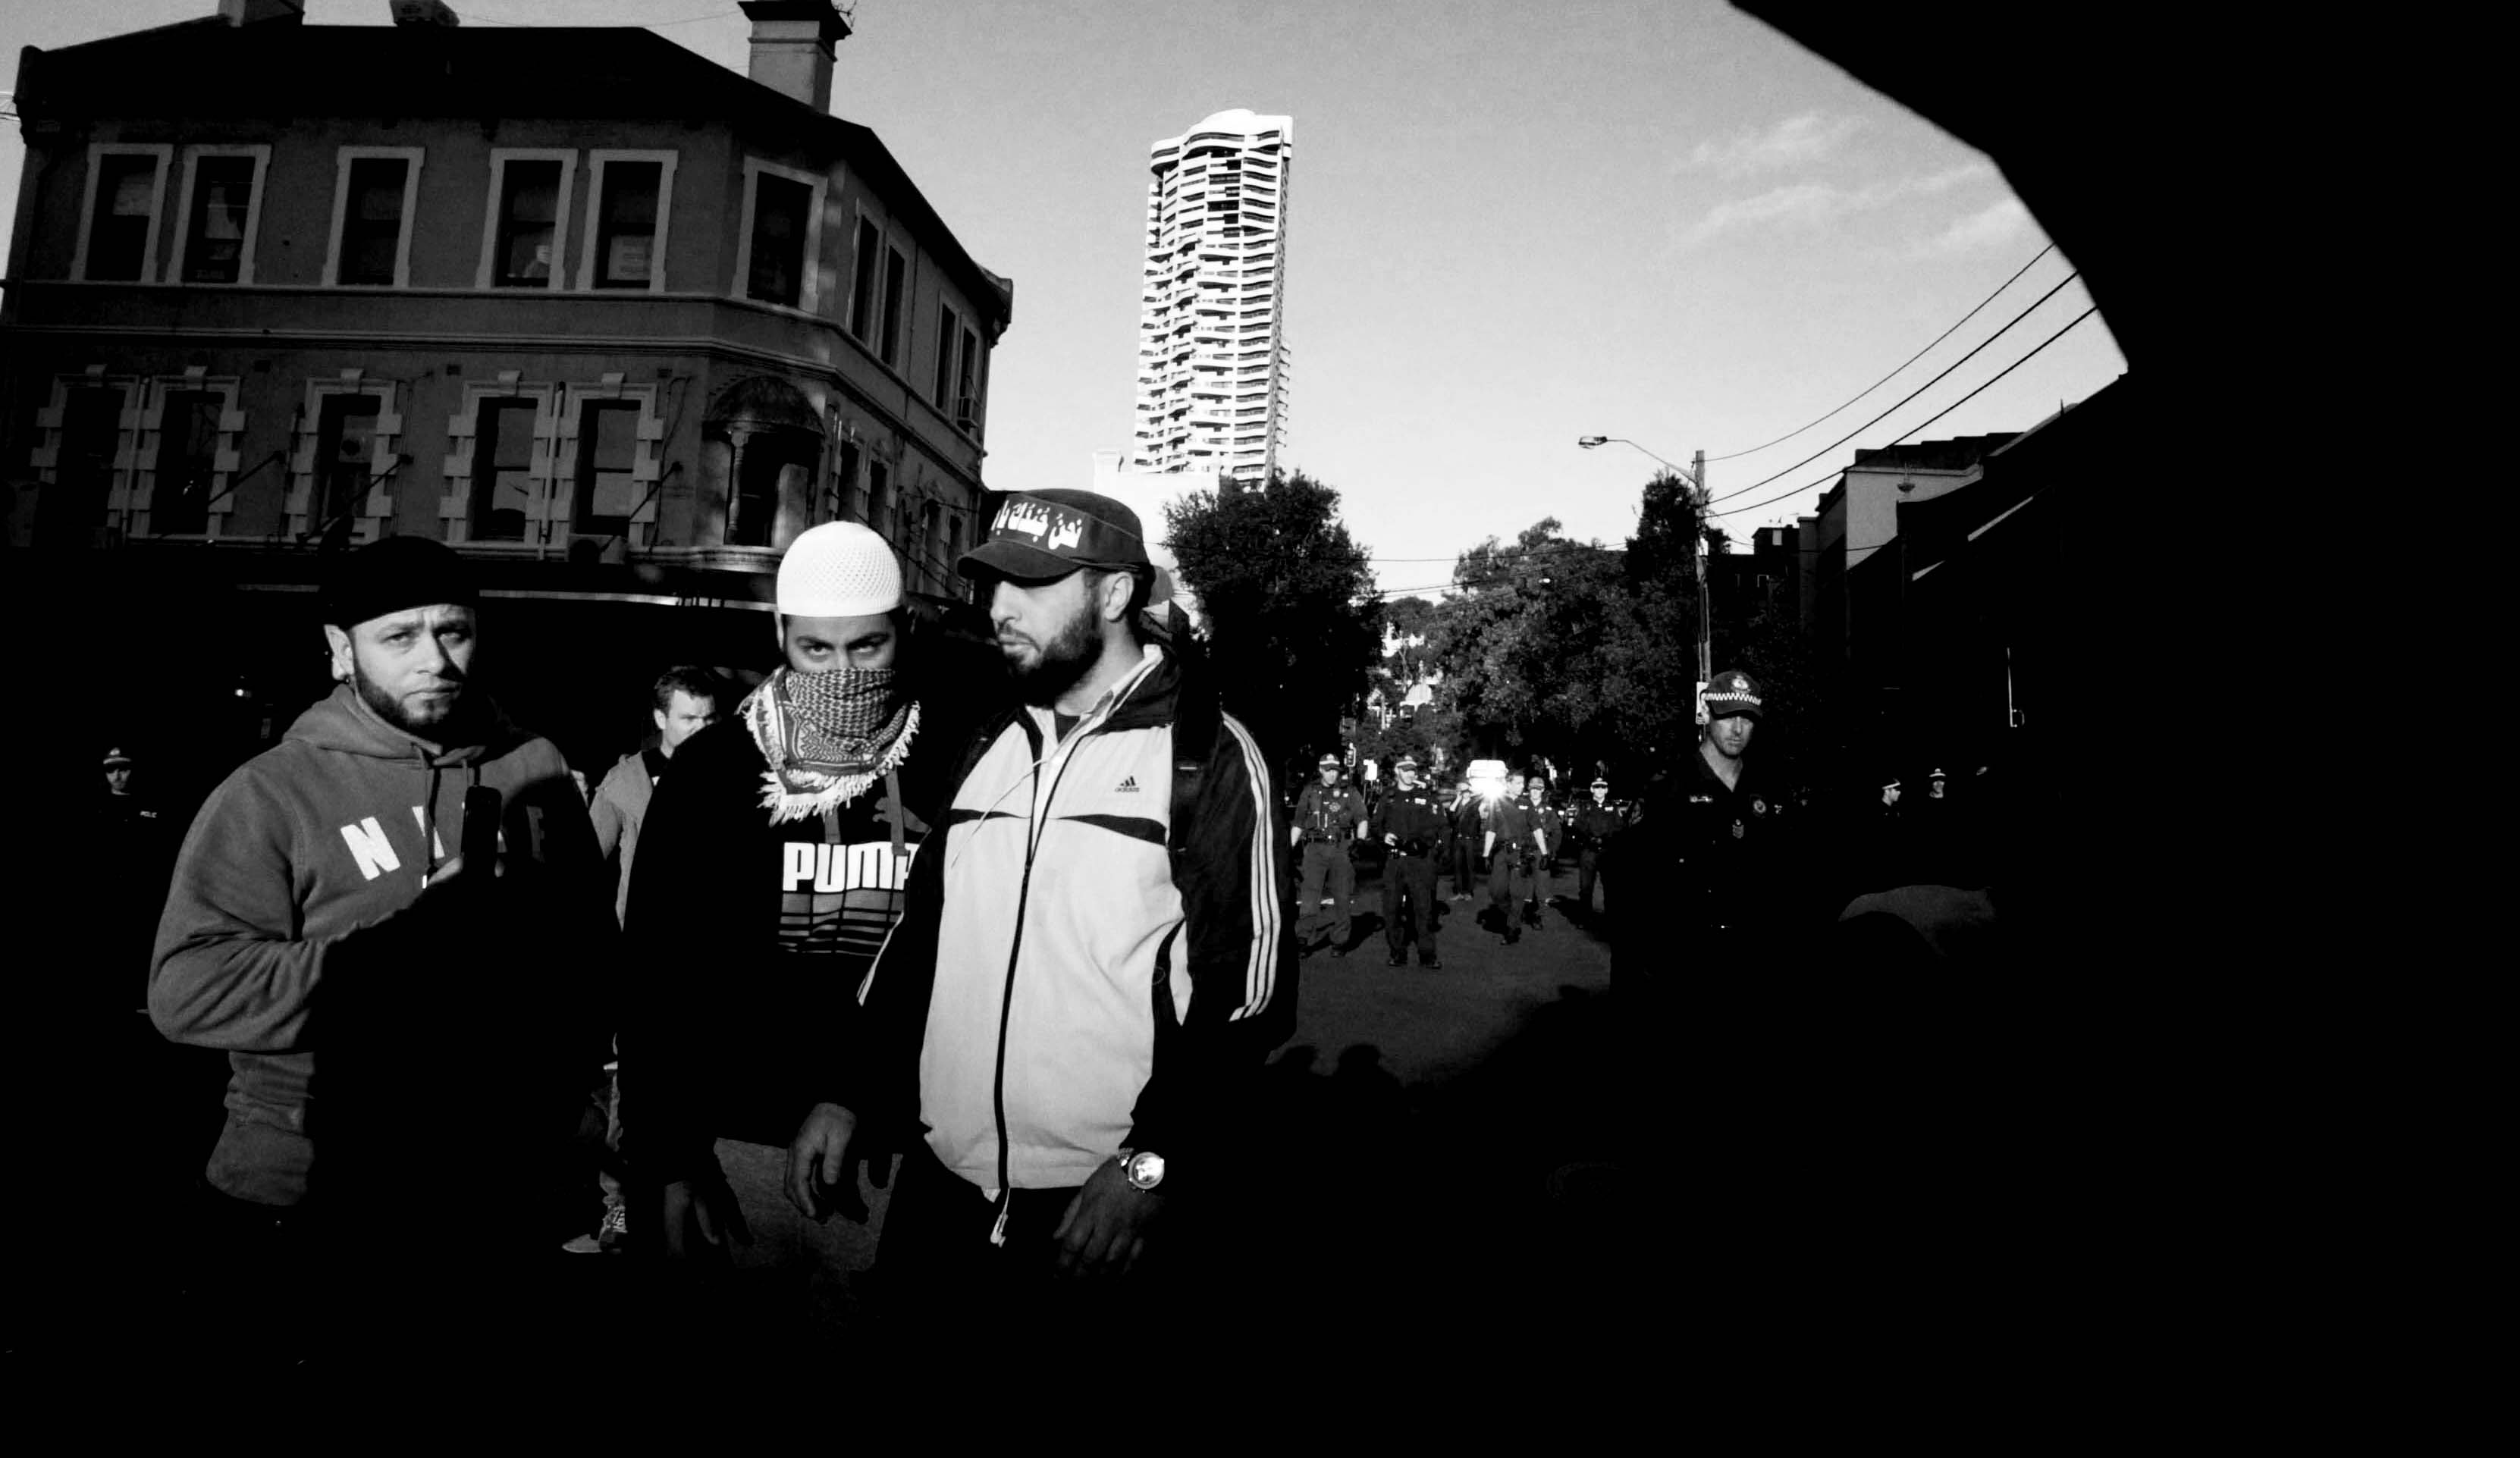 © SAM MOOY - 15.08.2012 -  Protestors on the streets in Kings Cross, Sydney after a protest against an anti-Islam film 'Innocence of Muslims'. While the protest started peacefully, violent confrontations between police and protesters began when protesters reached the U.S. Consulate.